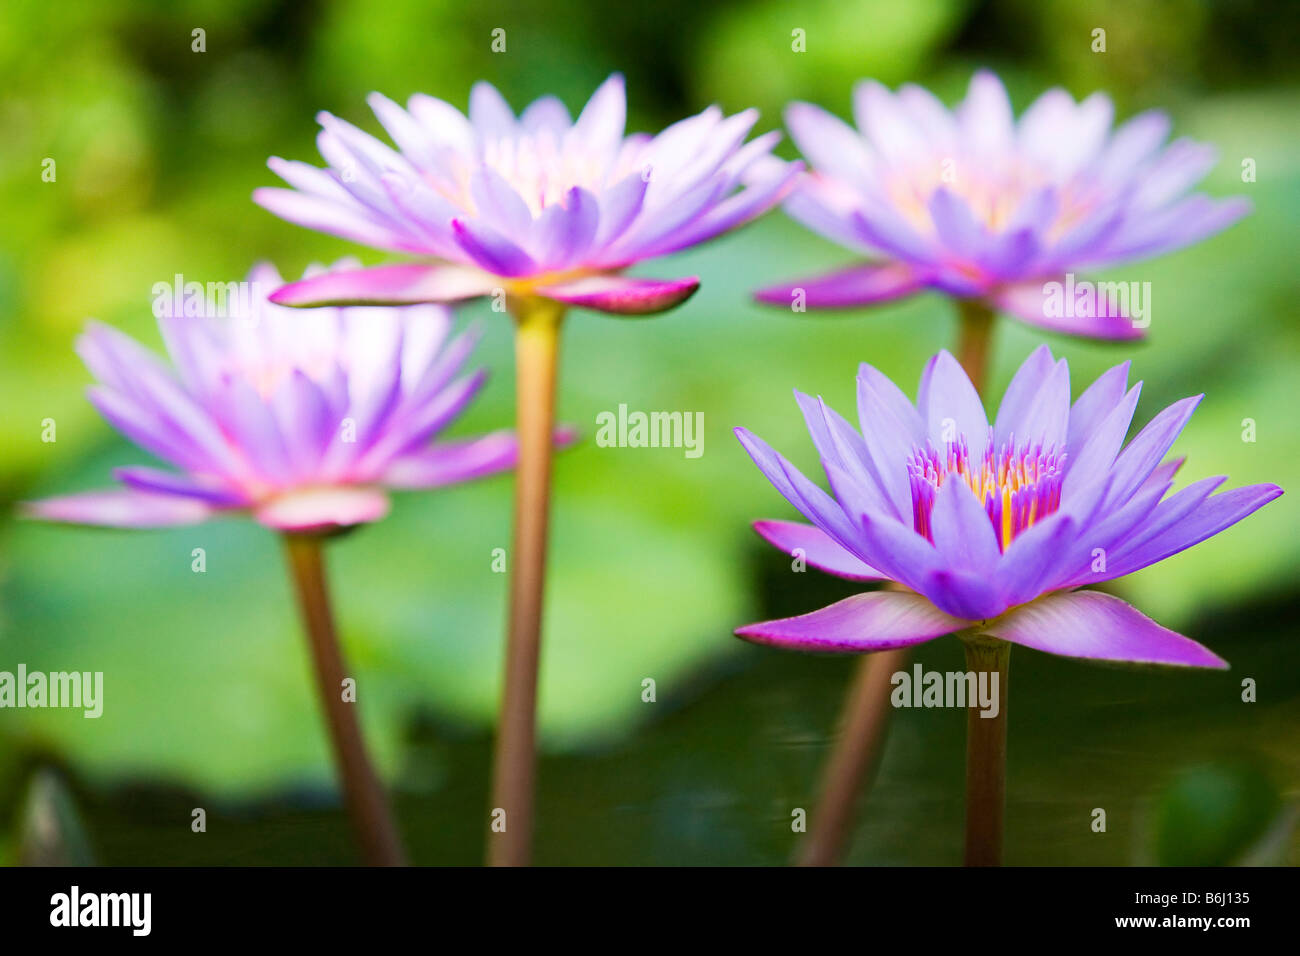 Pink Lotus The National Flower Of India Stock Photos Pink Lotus